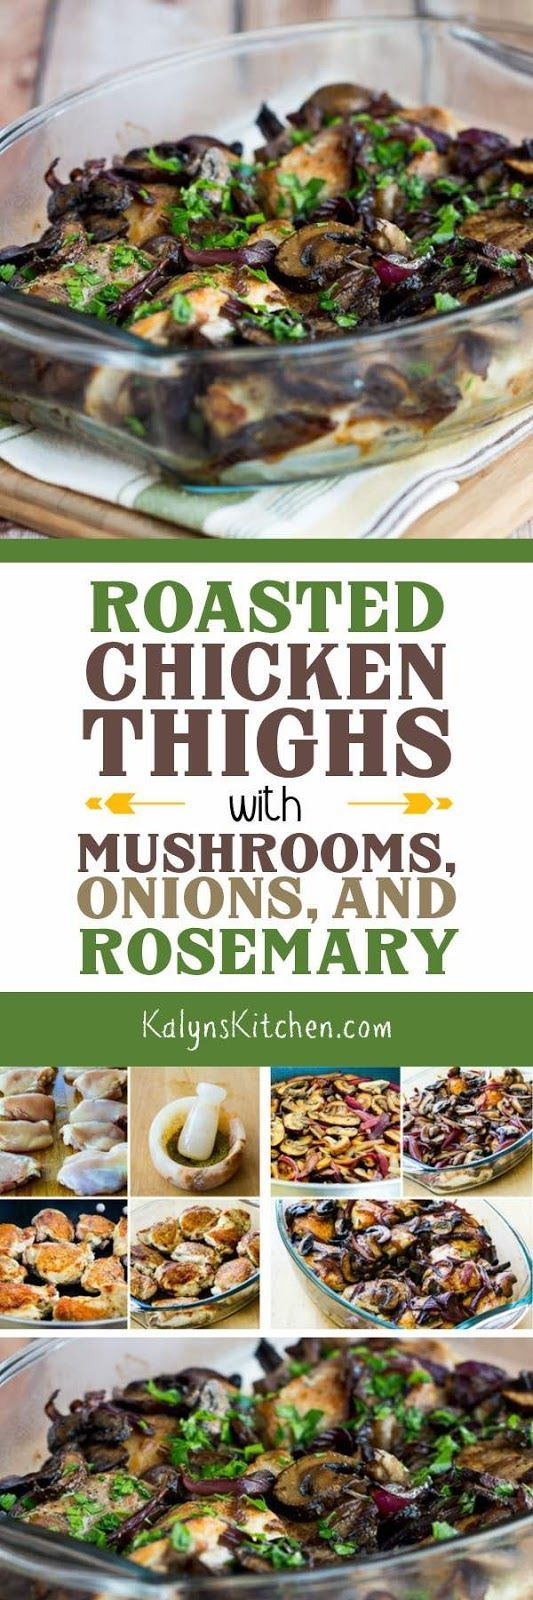 Roasted Chicken Thighs with Mushrooms, Onions, and Rosemary are an easy tasty dinner idea that's low-carb, Keto, low-glycemic, gluten-free, dairy-free, Paleo and Whole 30. [found on KalynsKitchen.com] #RoastedChicken #LowCarbRoastedChicken #KetoRoastedChicken #LowCarbRecipe #KetoRecipe